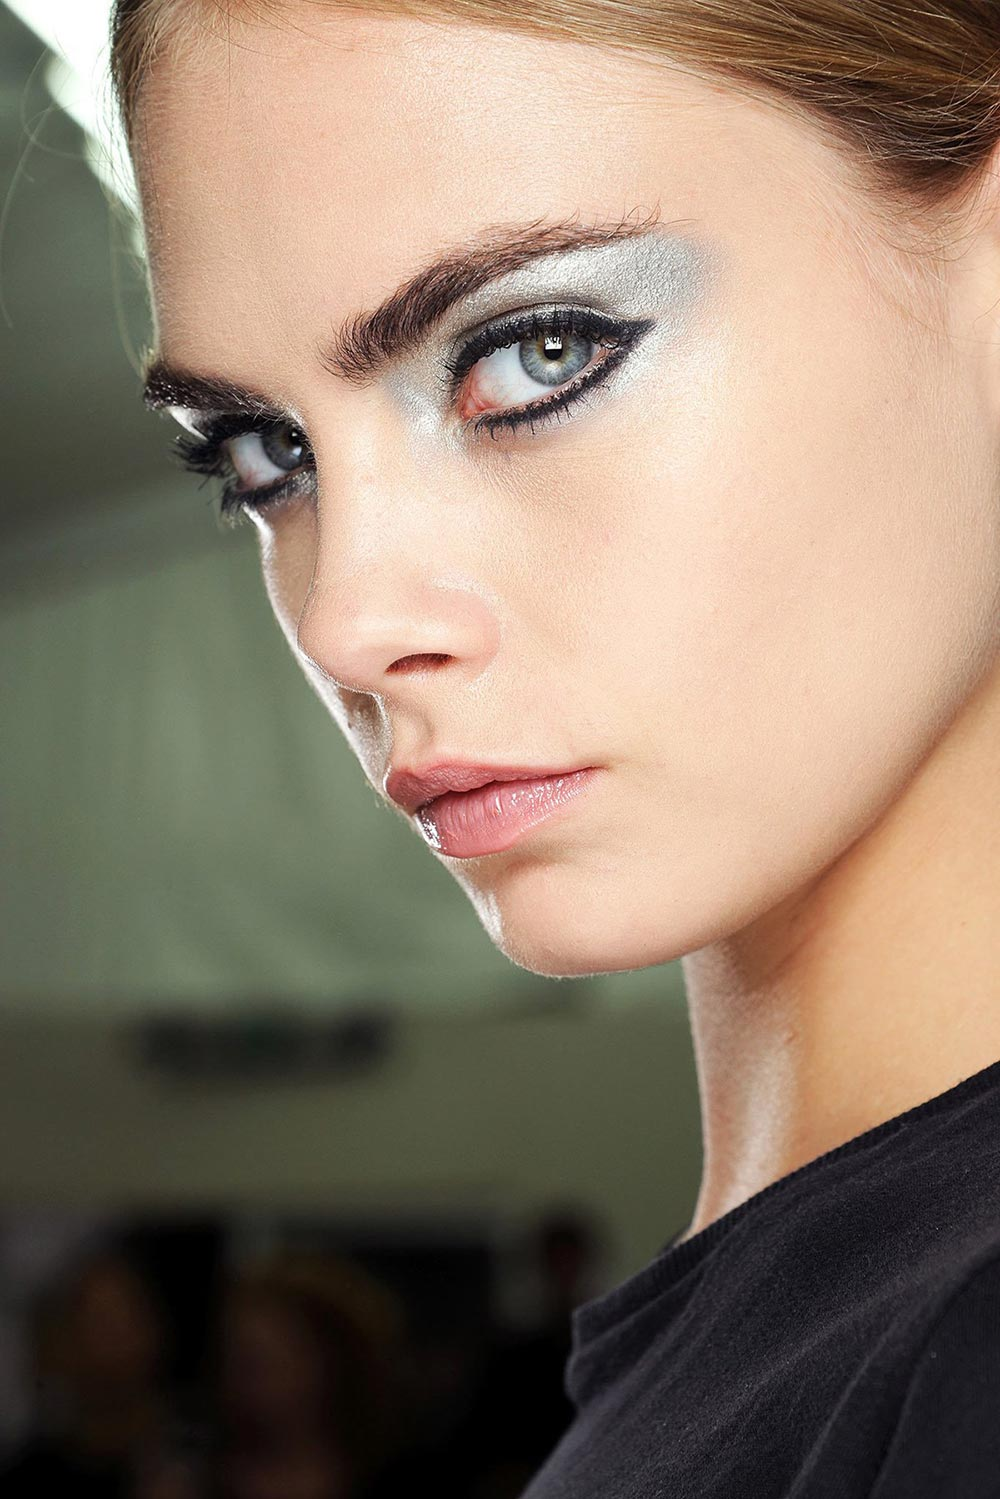 Chanel Spring/Summer 2013 runway beauty look